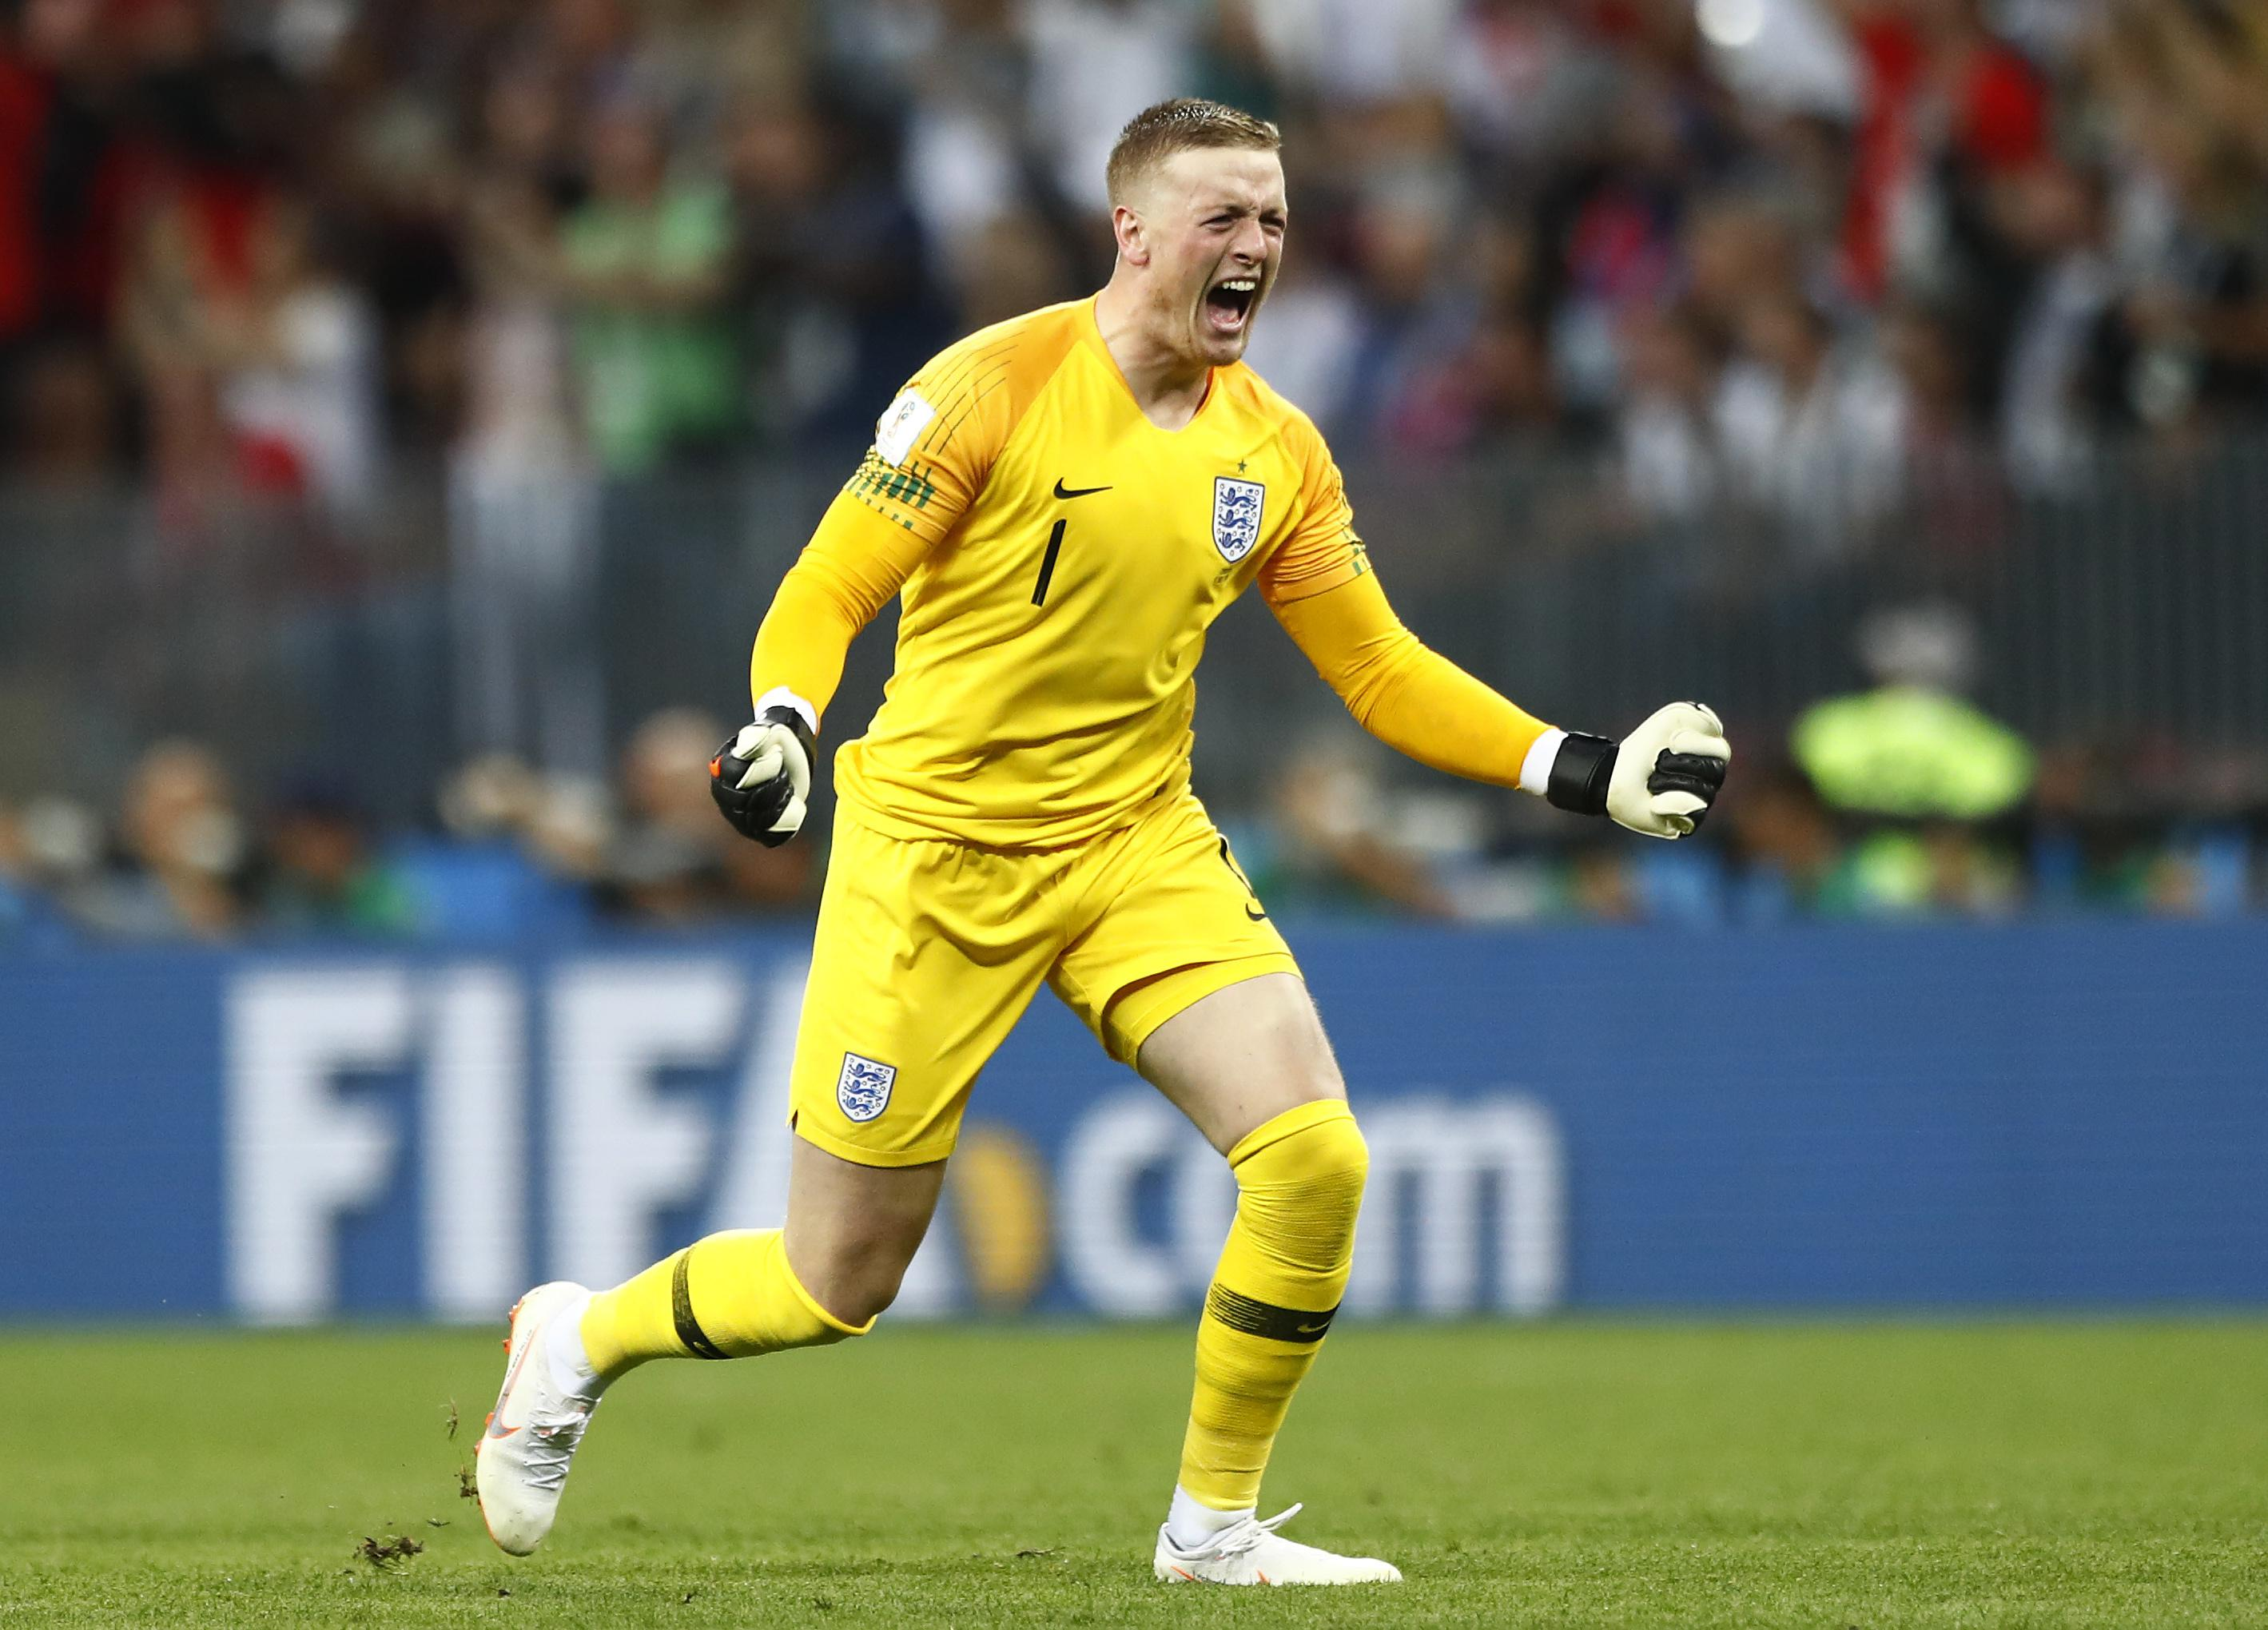 Jordan Pickford still has work to do and can do it at Everton, says David Moyes